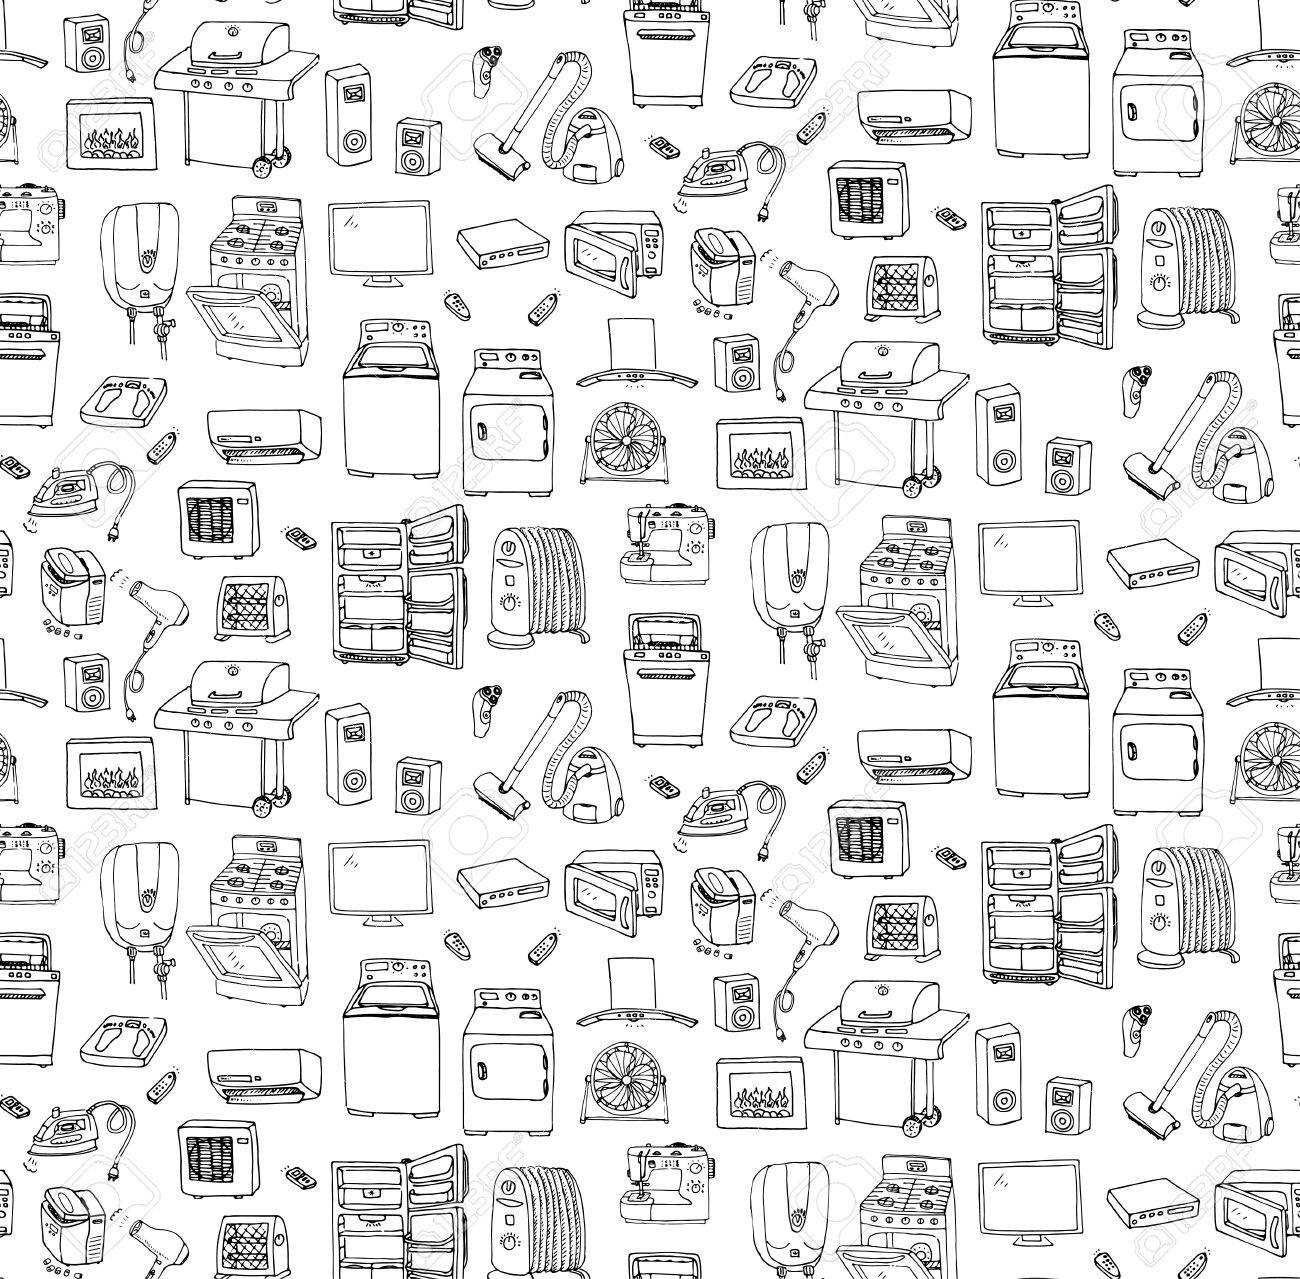 Seamless background hand drawn doodle Home appliance vector illustration Cartoon icons set Various household equipment Major appliances Consumer electronics Kitchenware Freehand vector sketches - 54971927